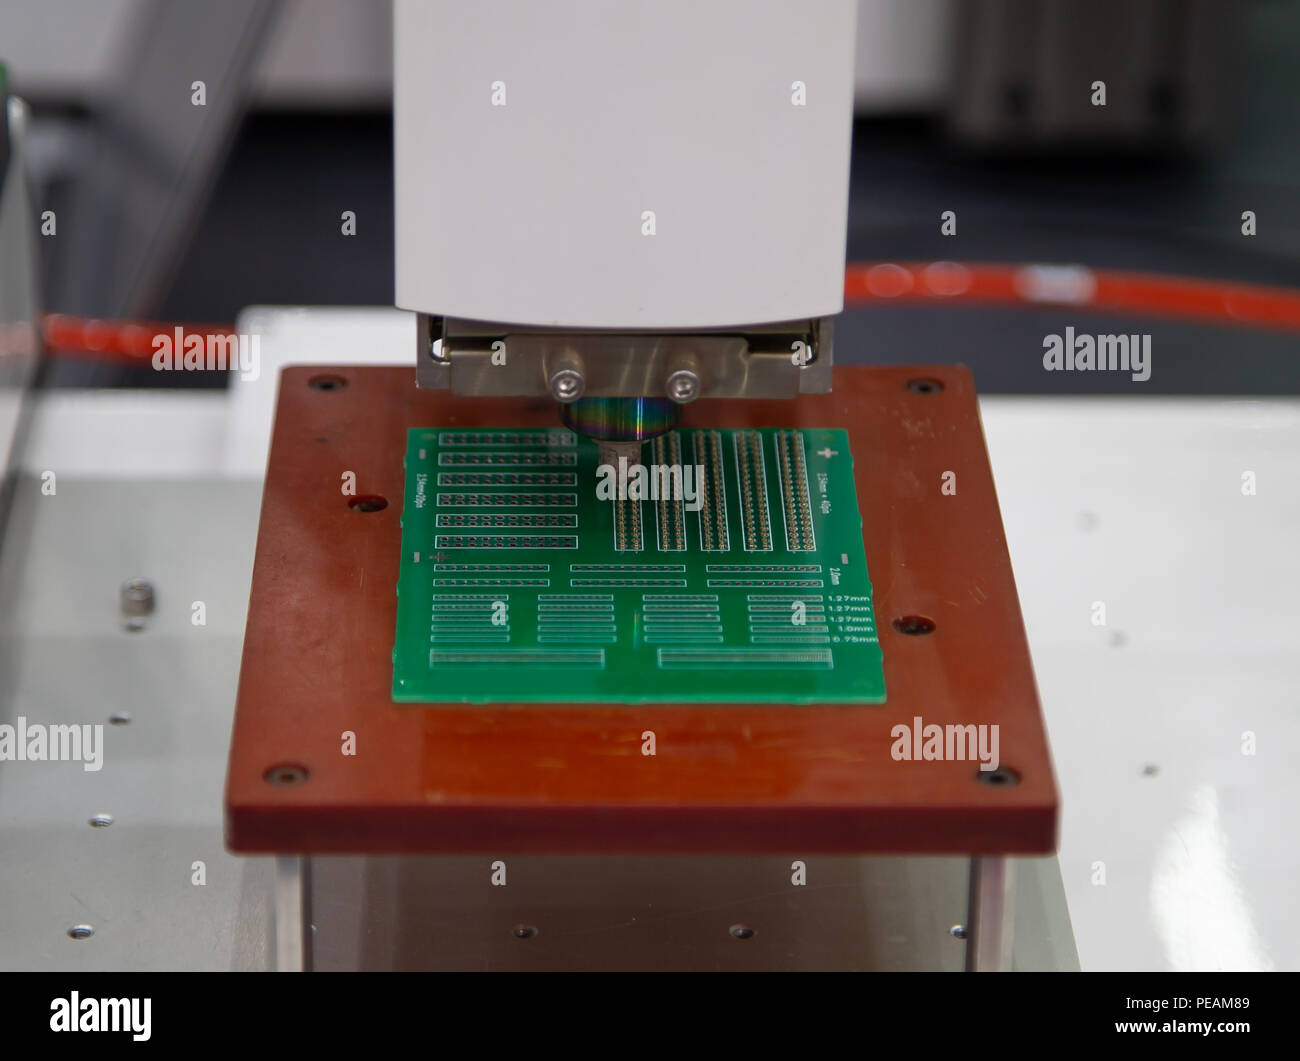 Electronic Component Assembly Stock Photos Board Services Buy Circuit Assemblyelectronic Fully Automated Industry Machine Image